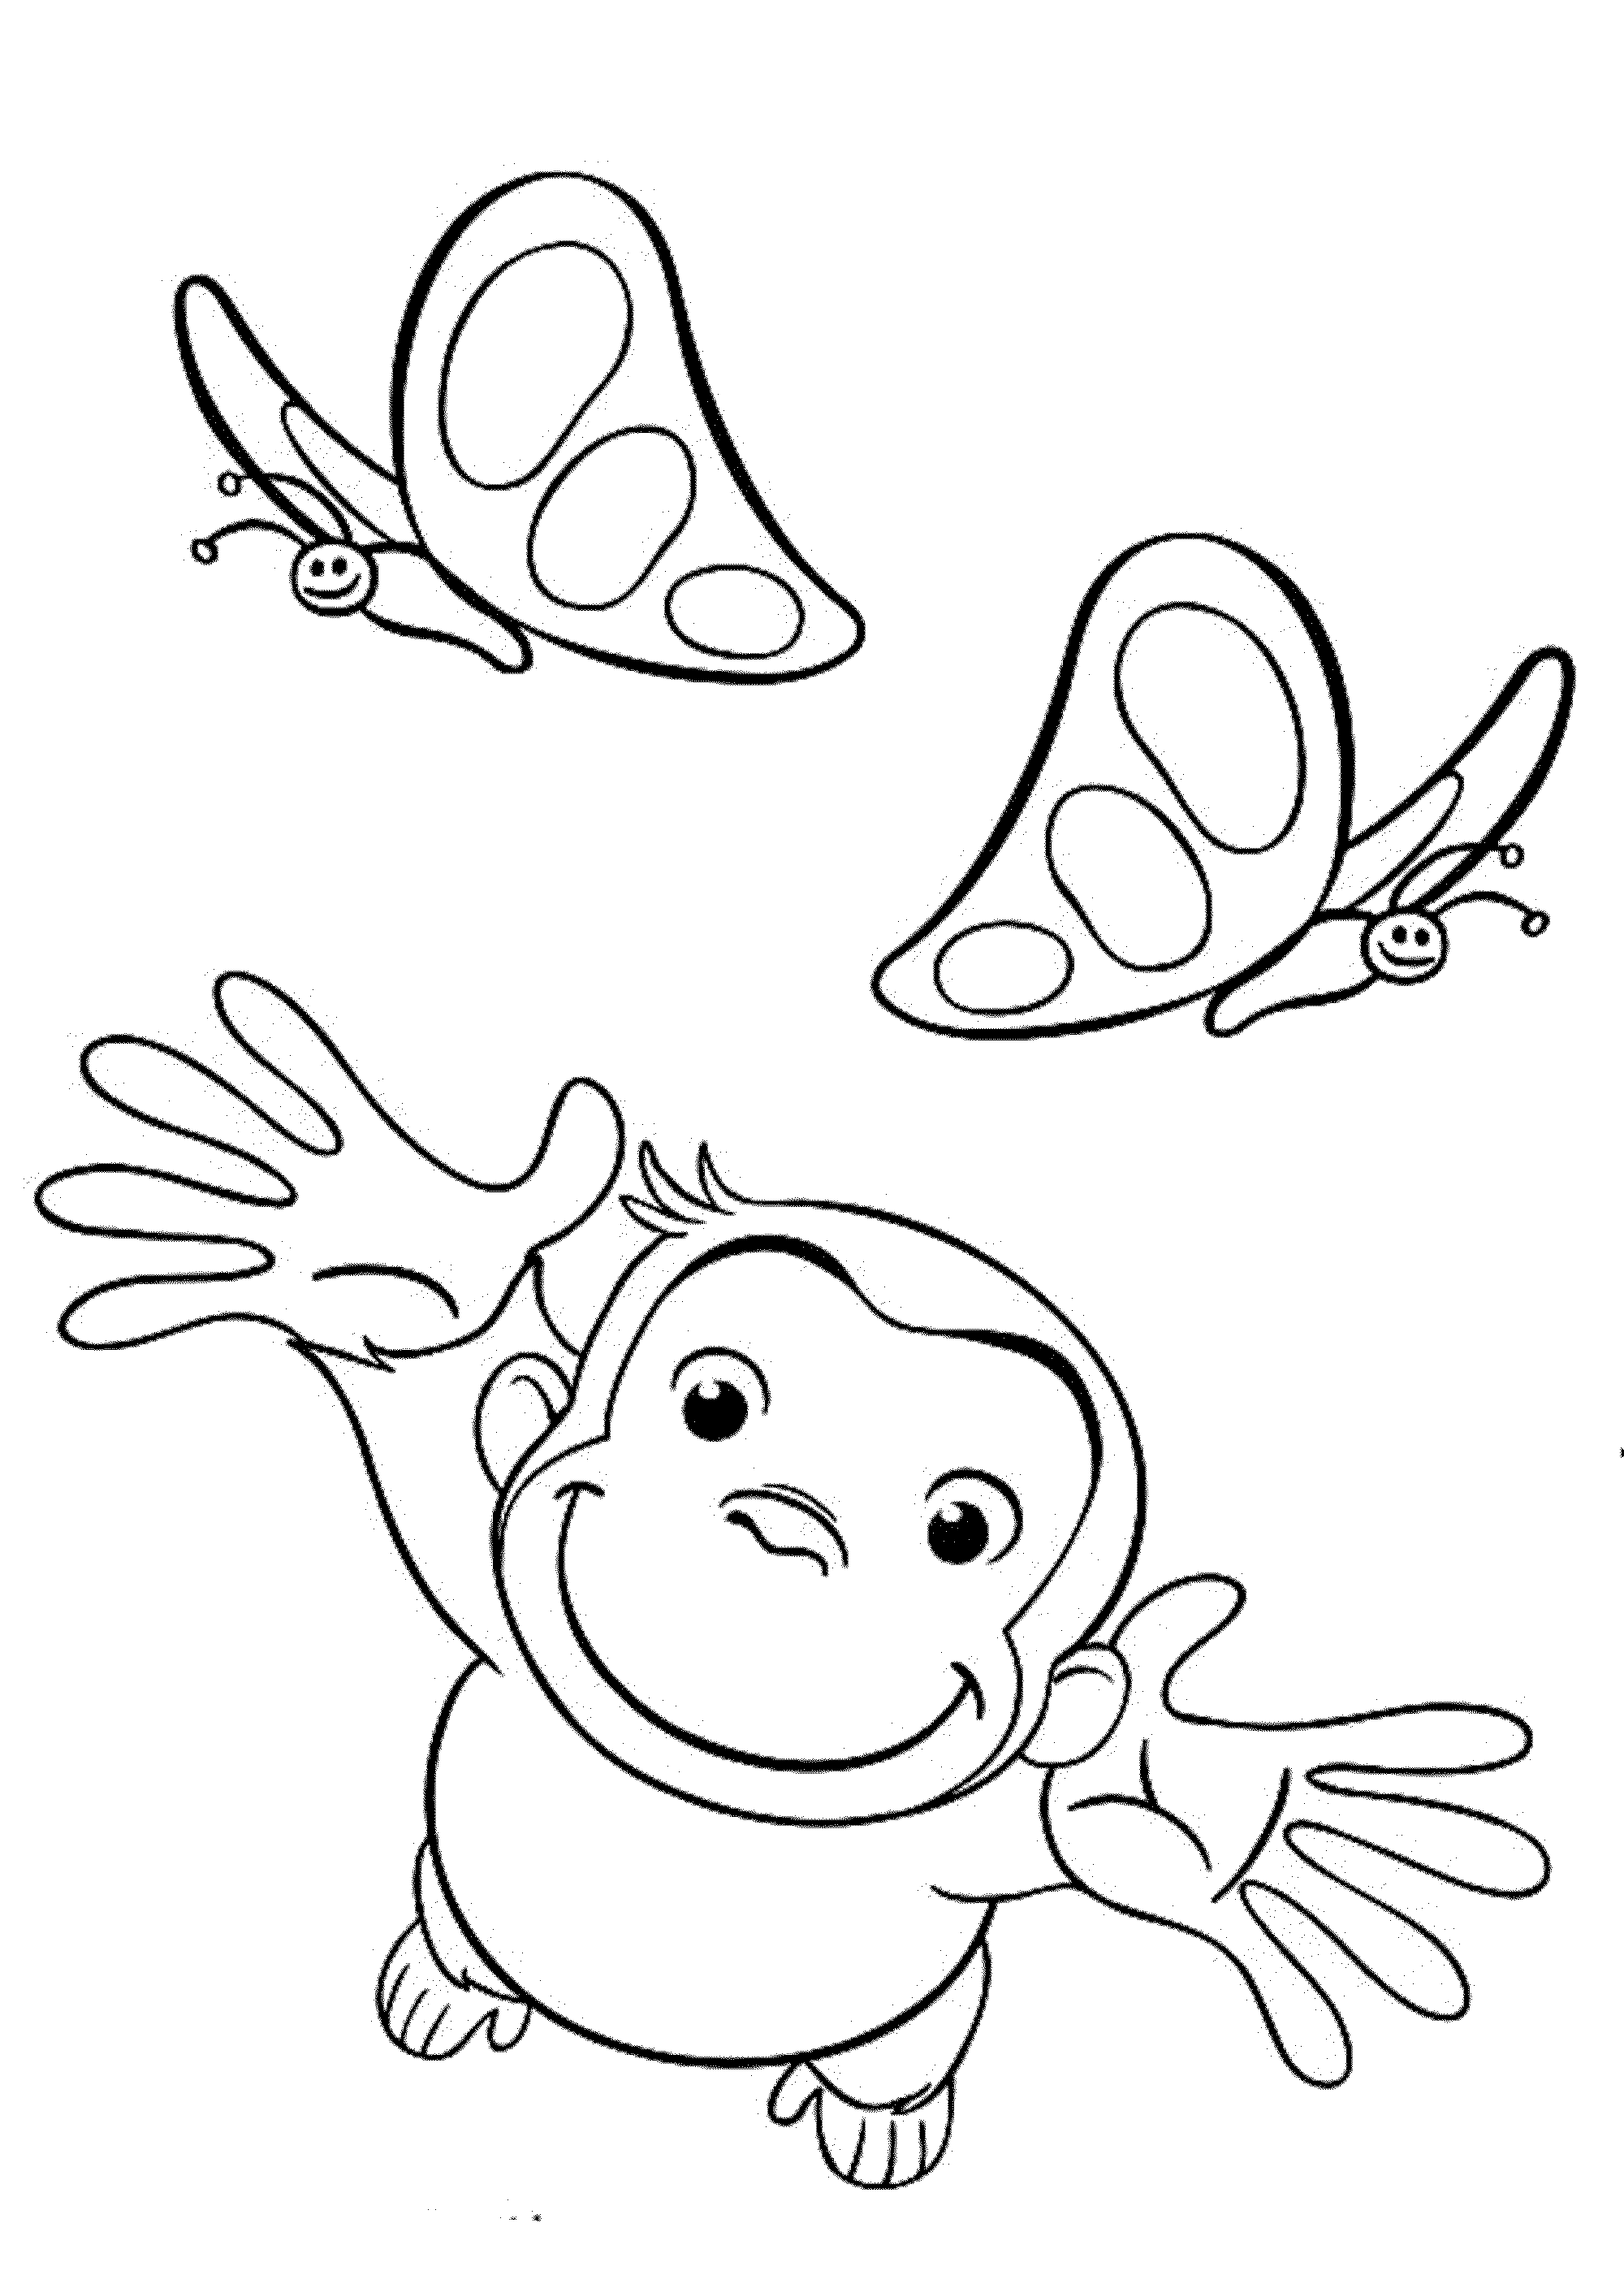 curious george coloring pages curious george coloring pages the sun flower pages george pages curious coloring